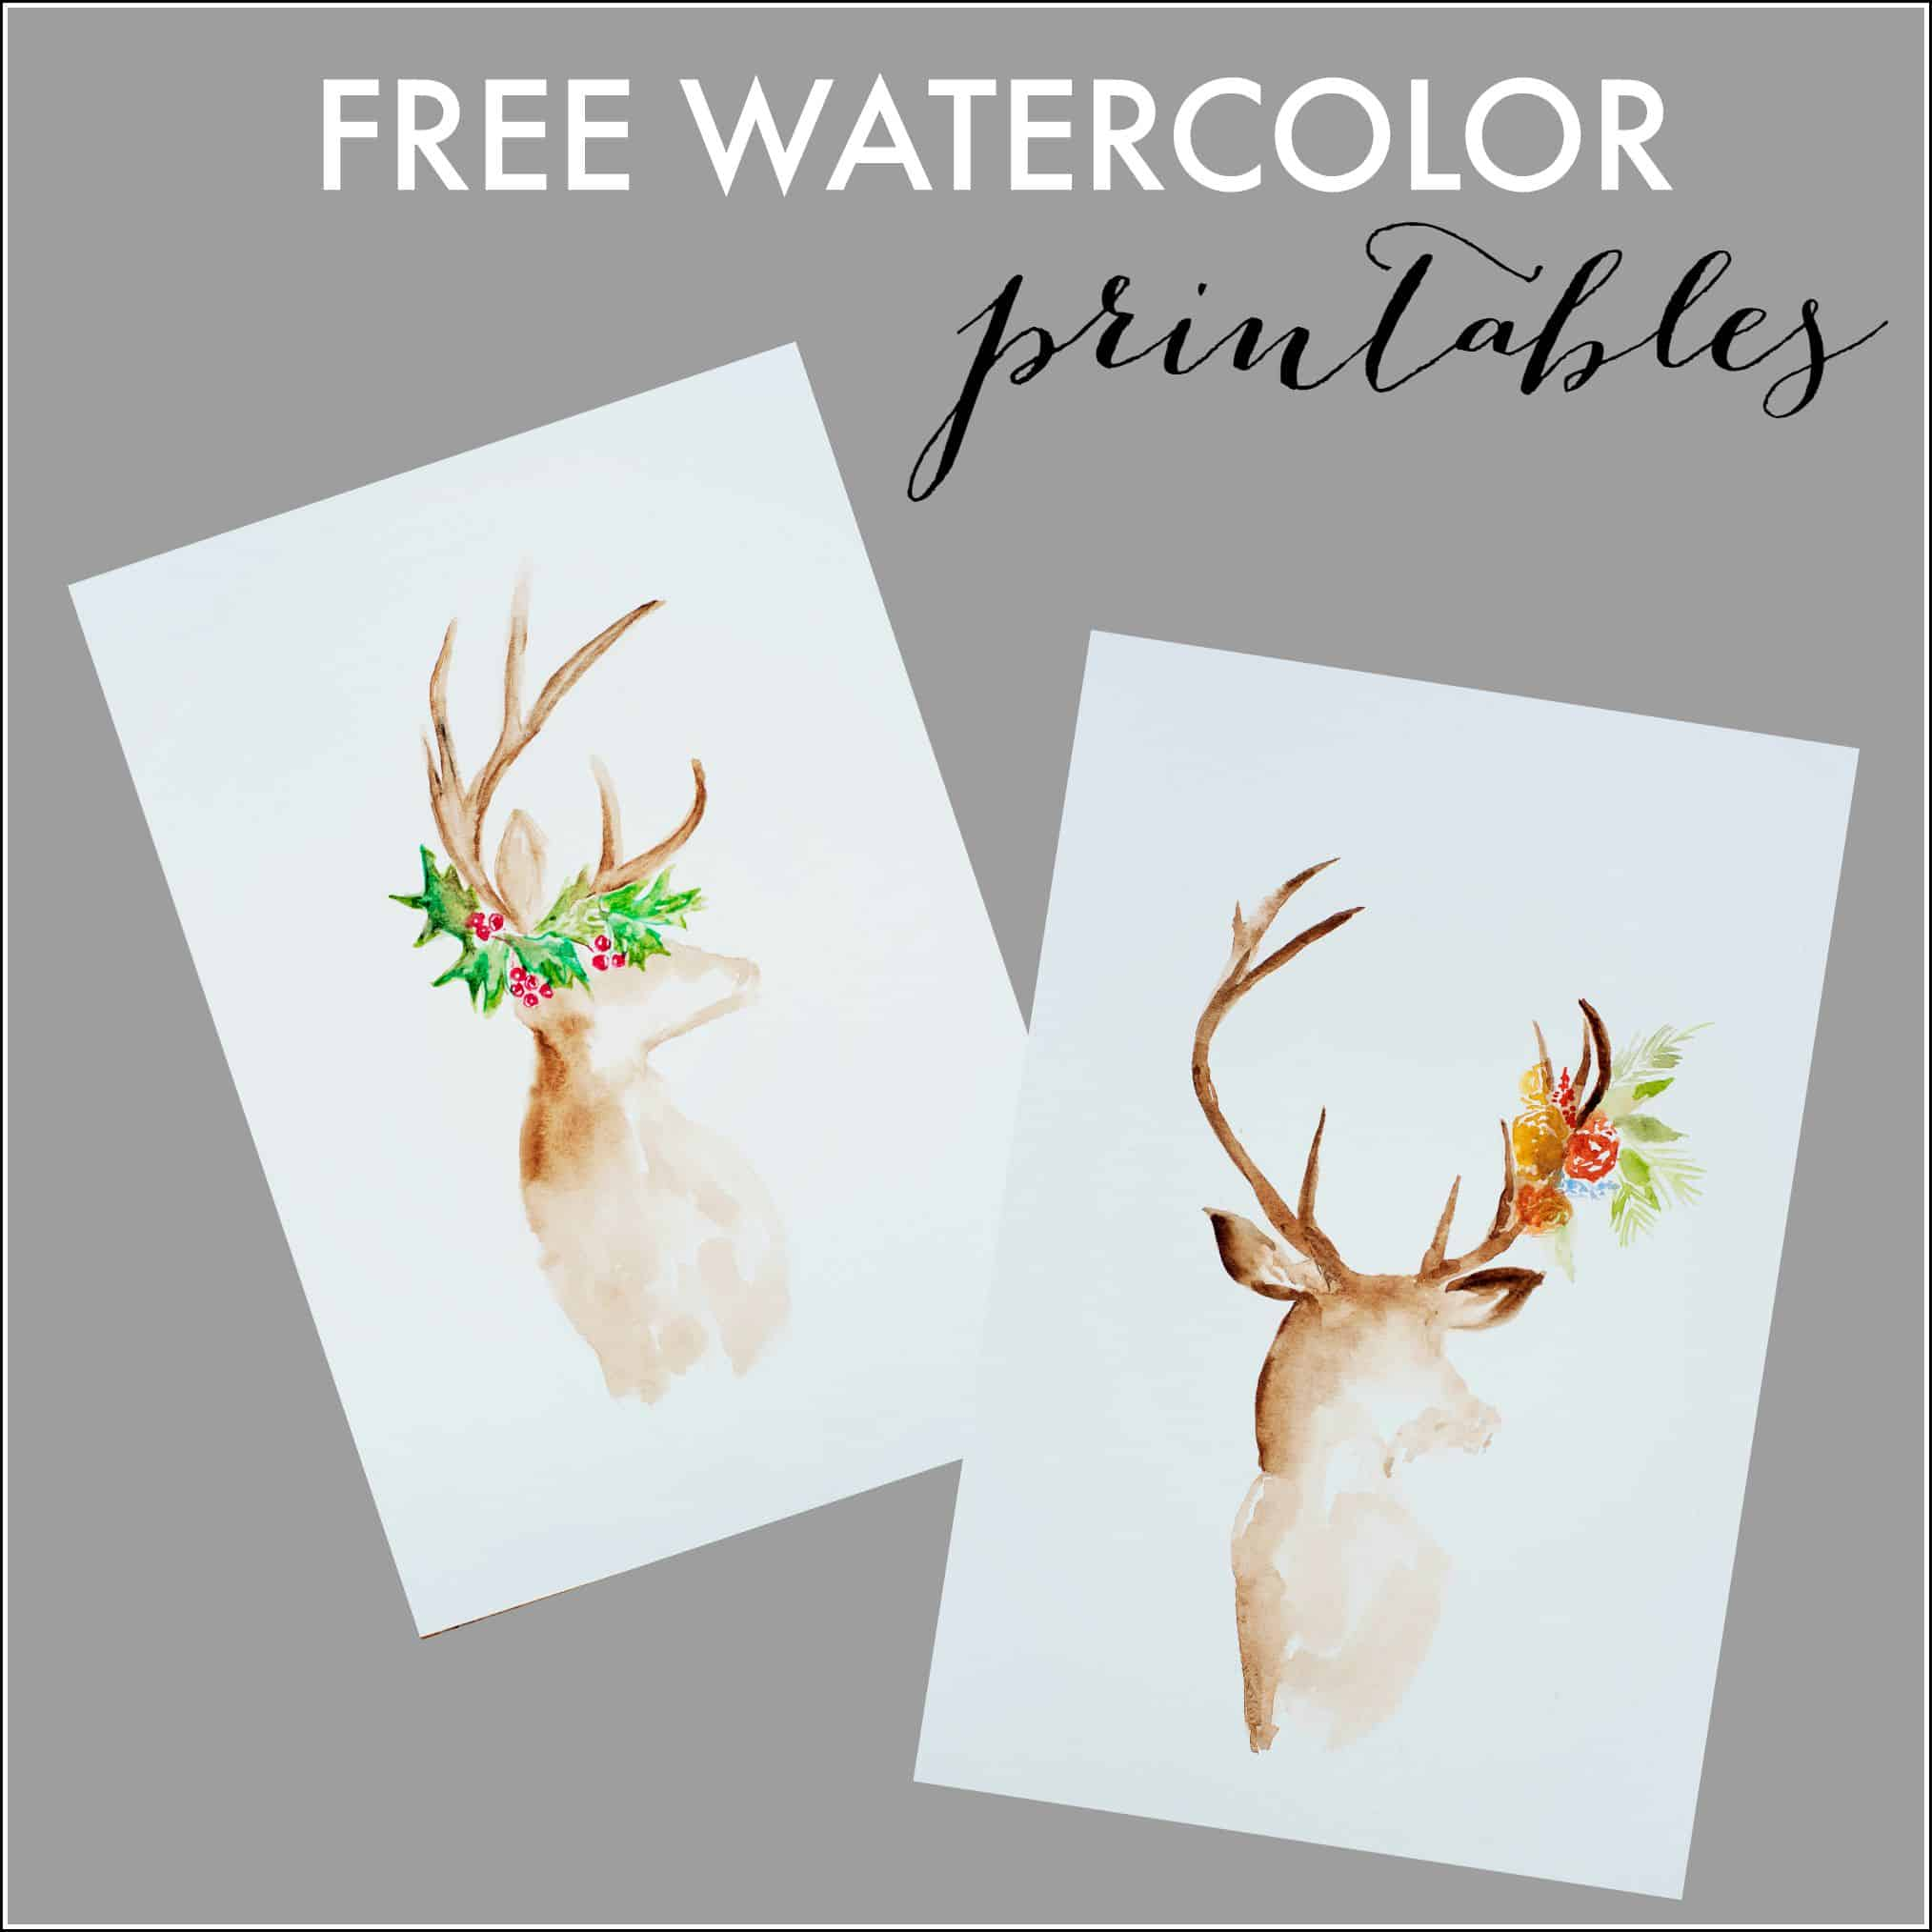 photograph about Watercolor Printable named Absolutely free WATERCOLOR Tumble printable